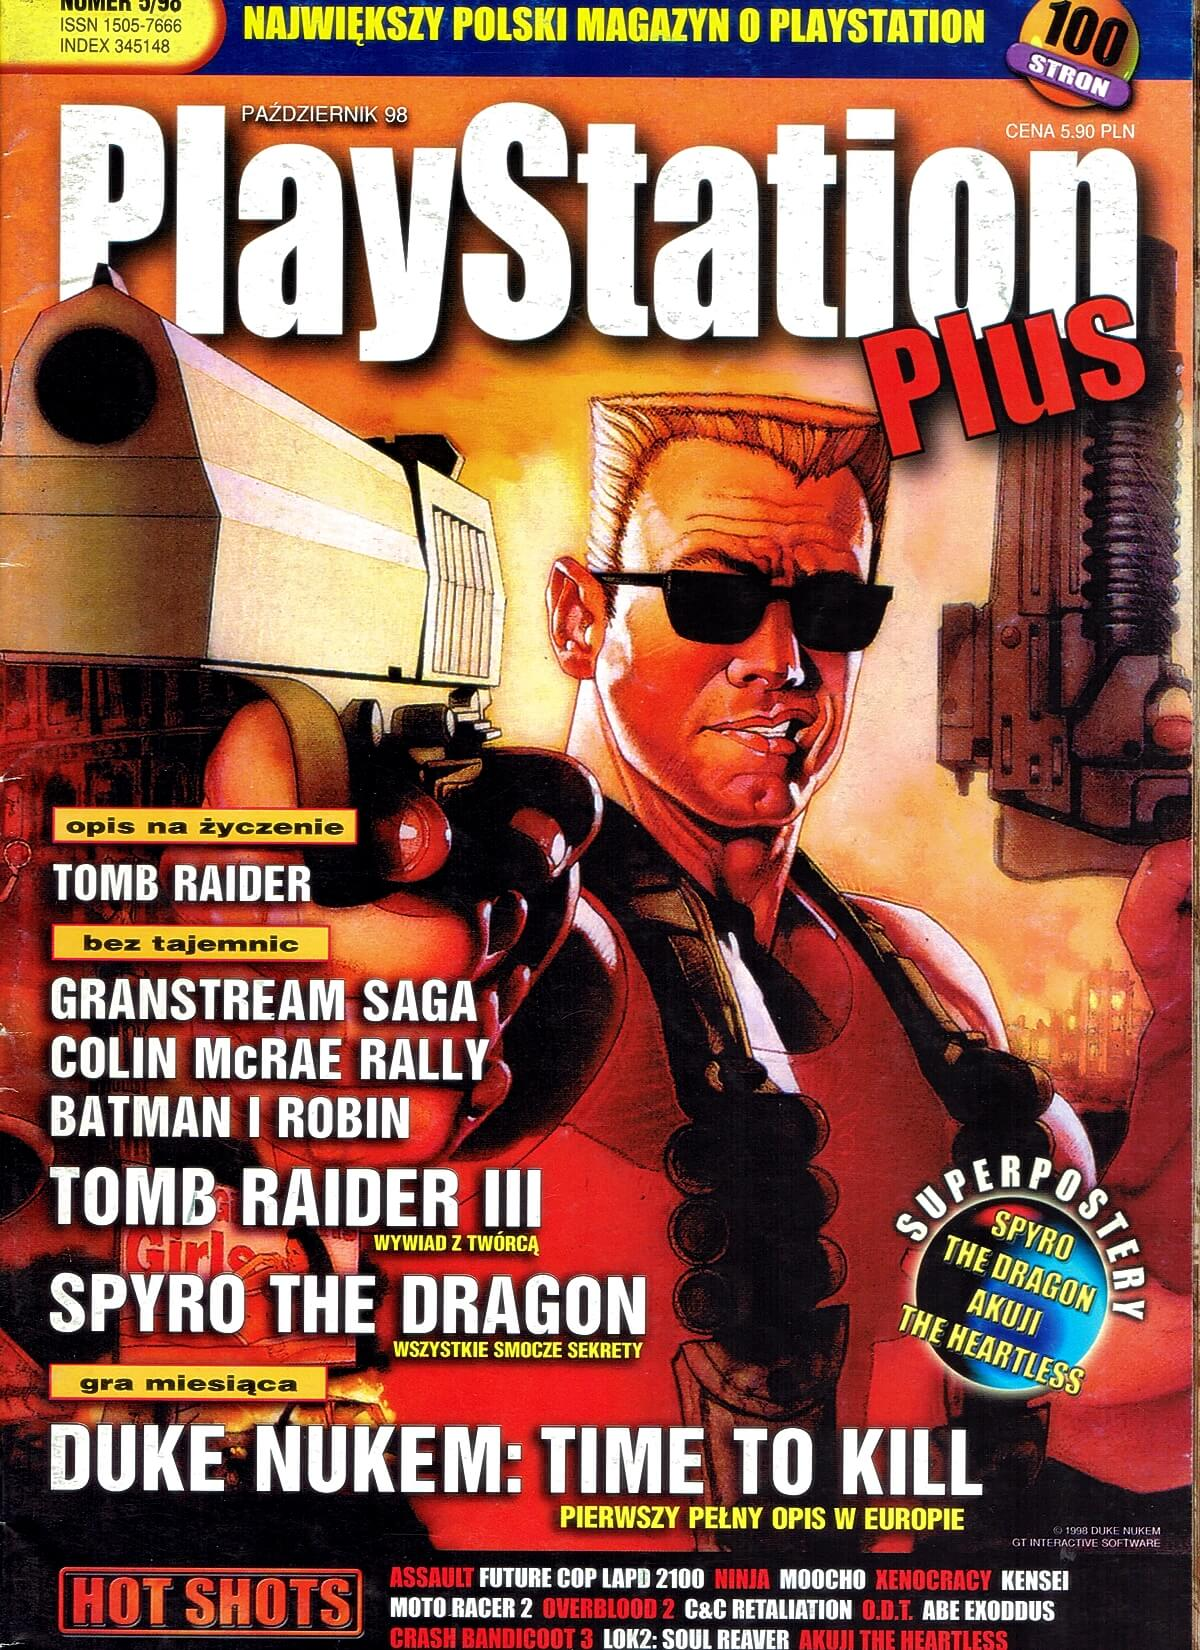 playstation plus magazyn 10 - PlayStation Plus 5/98